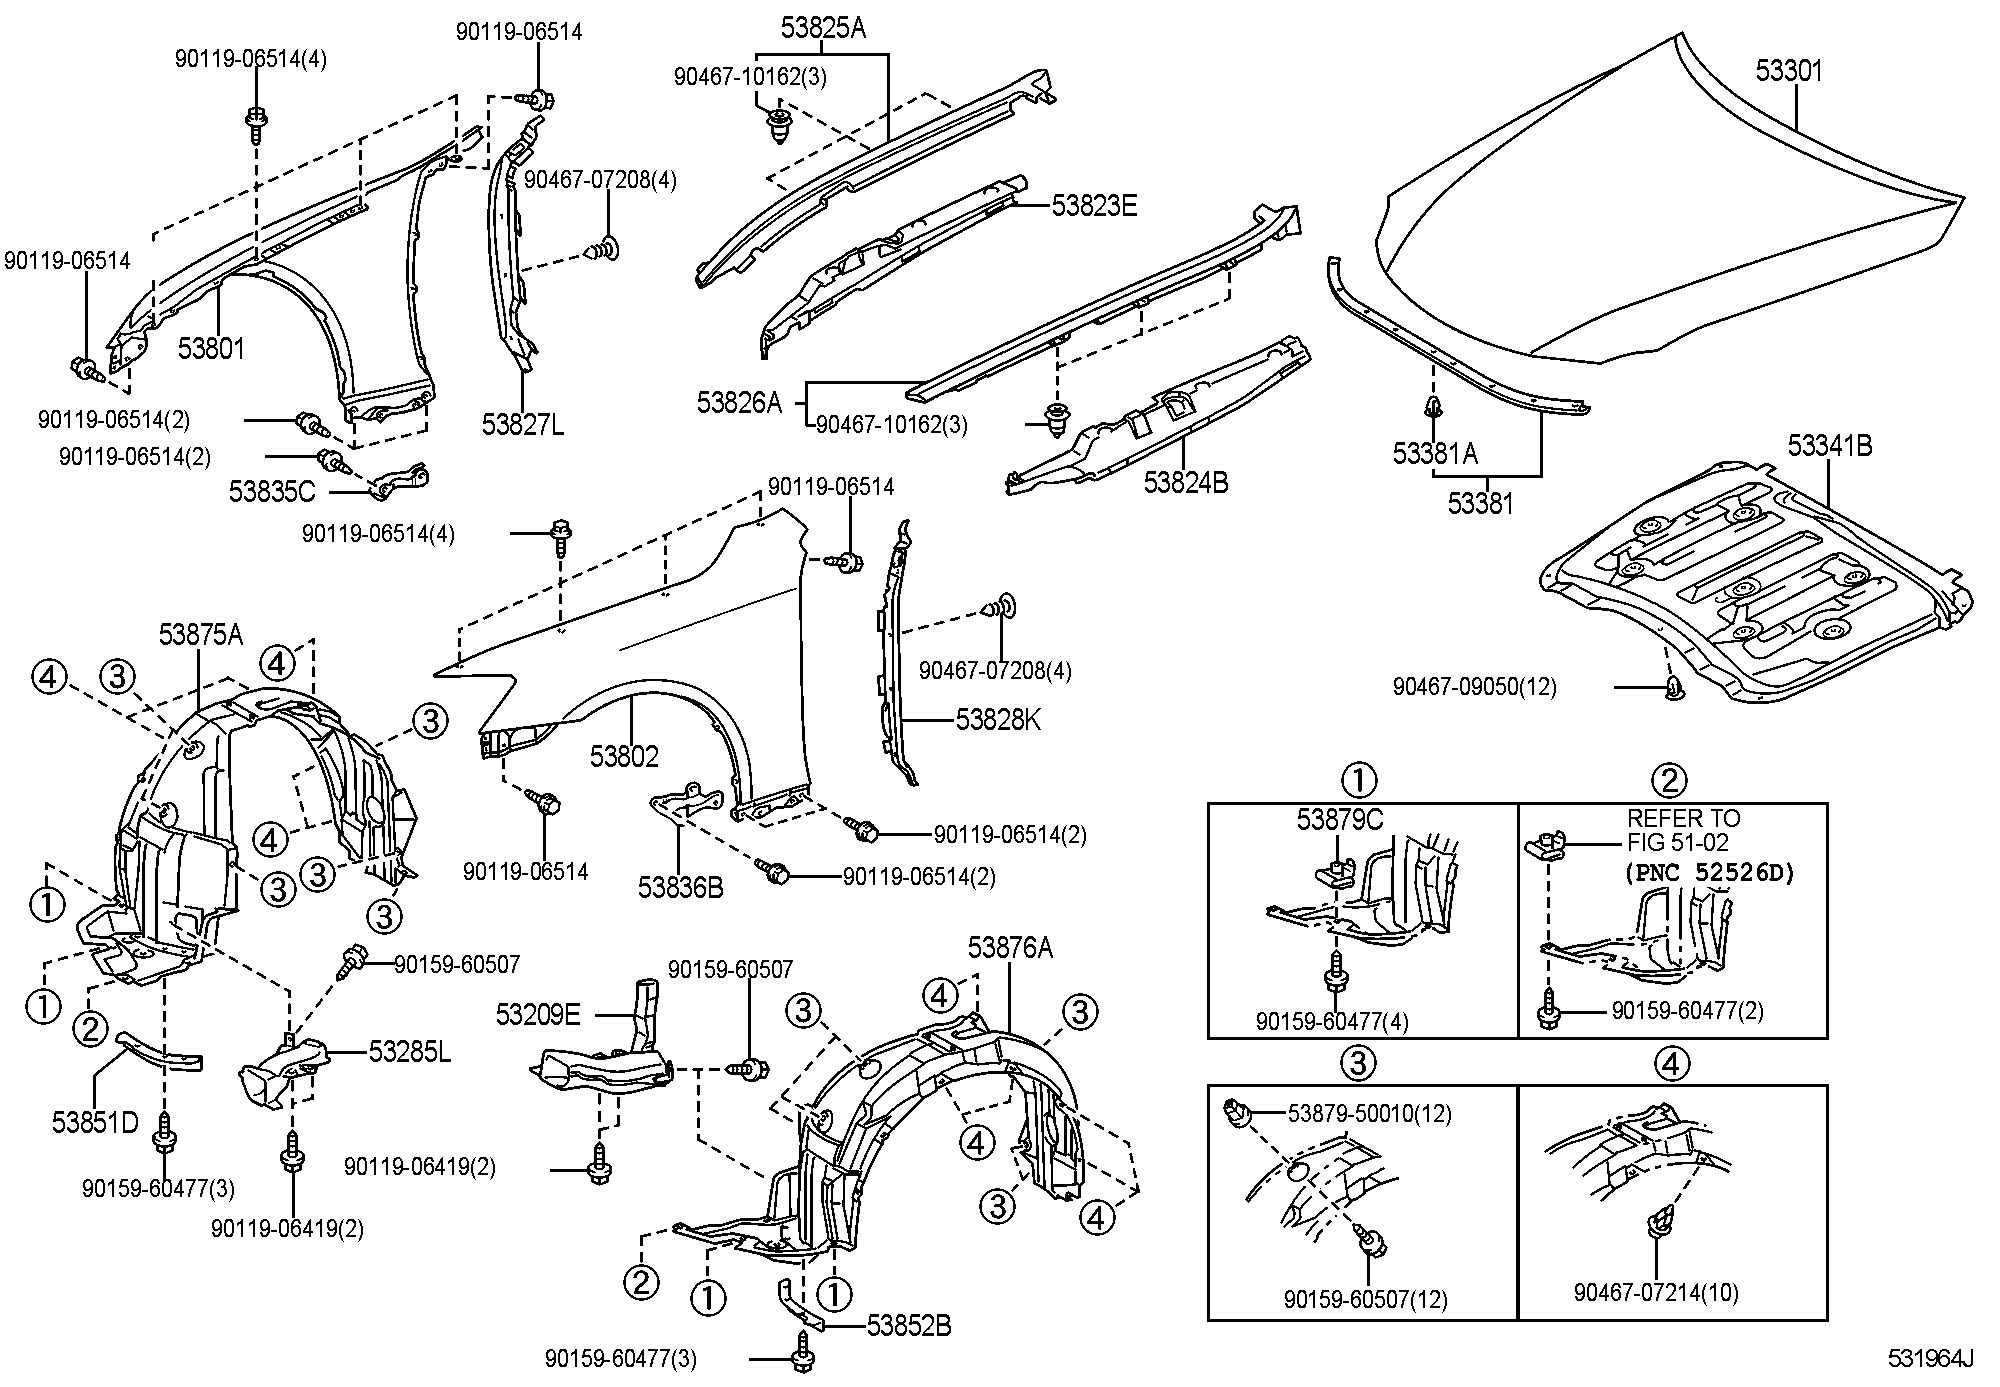 lexus gx470 rear door parts diagram  lexus  auto wiring